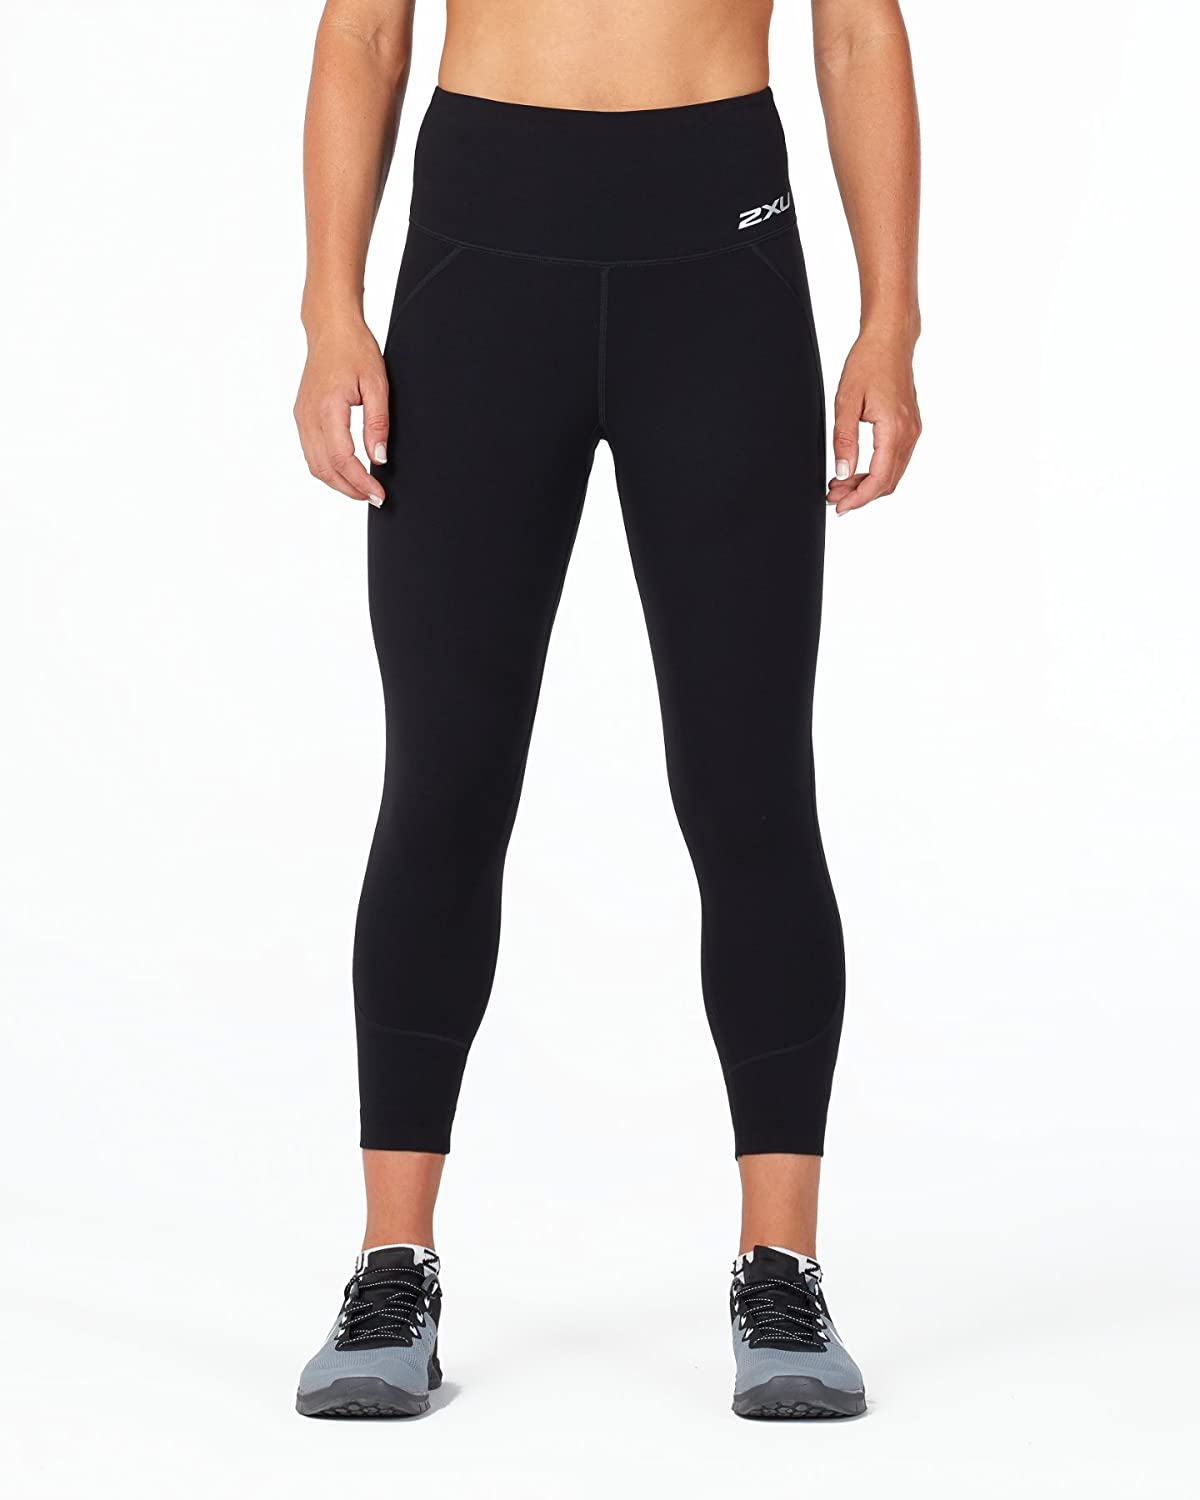 88a9d2763a83c4 Amazon.com: 2XU Women's Fitness Hi-Rise 7/8 Compression Tights: Sports &  Outdoors